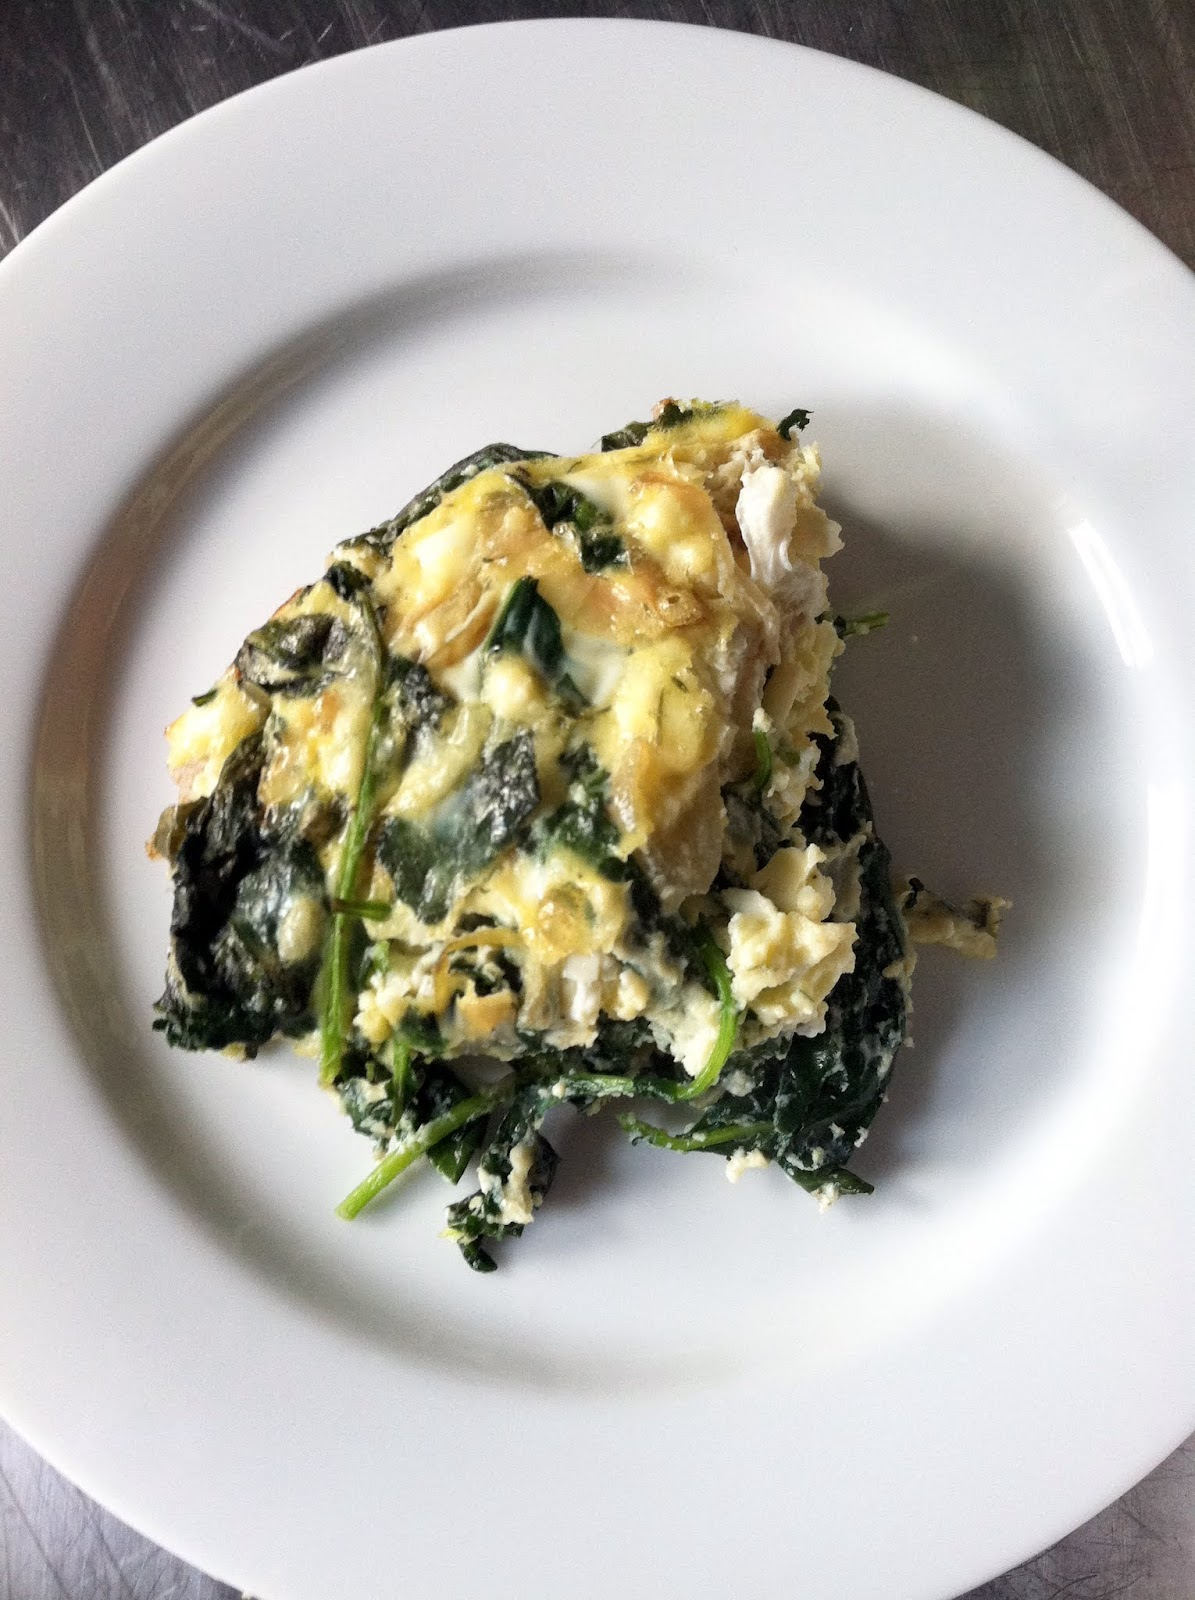 Kale And Feta Breakfast Casserole Recipes — Dishmaps